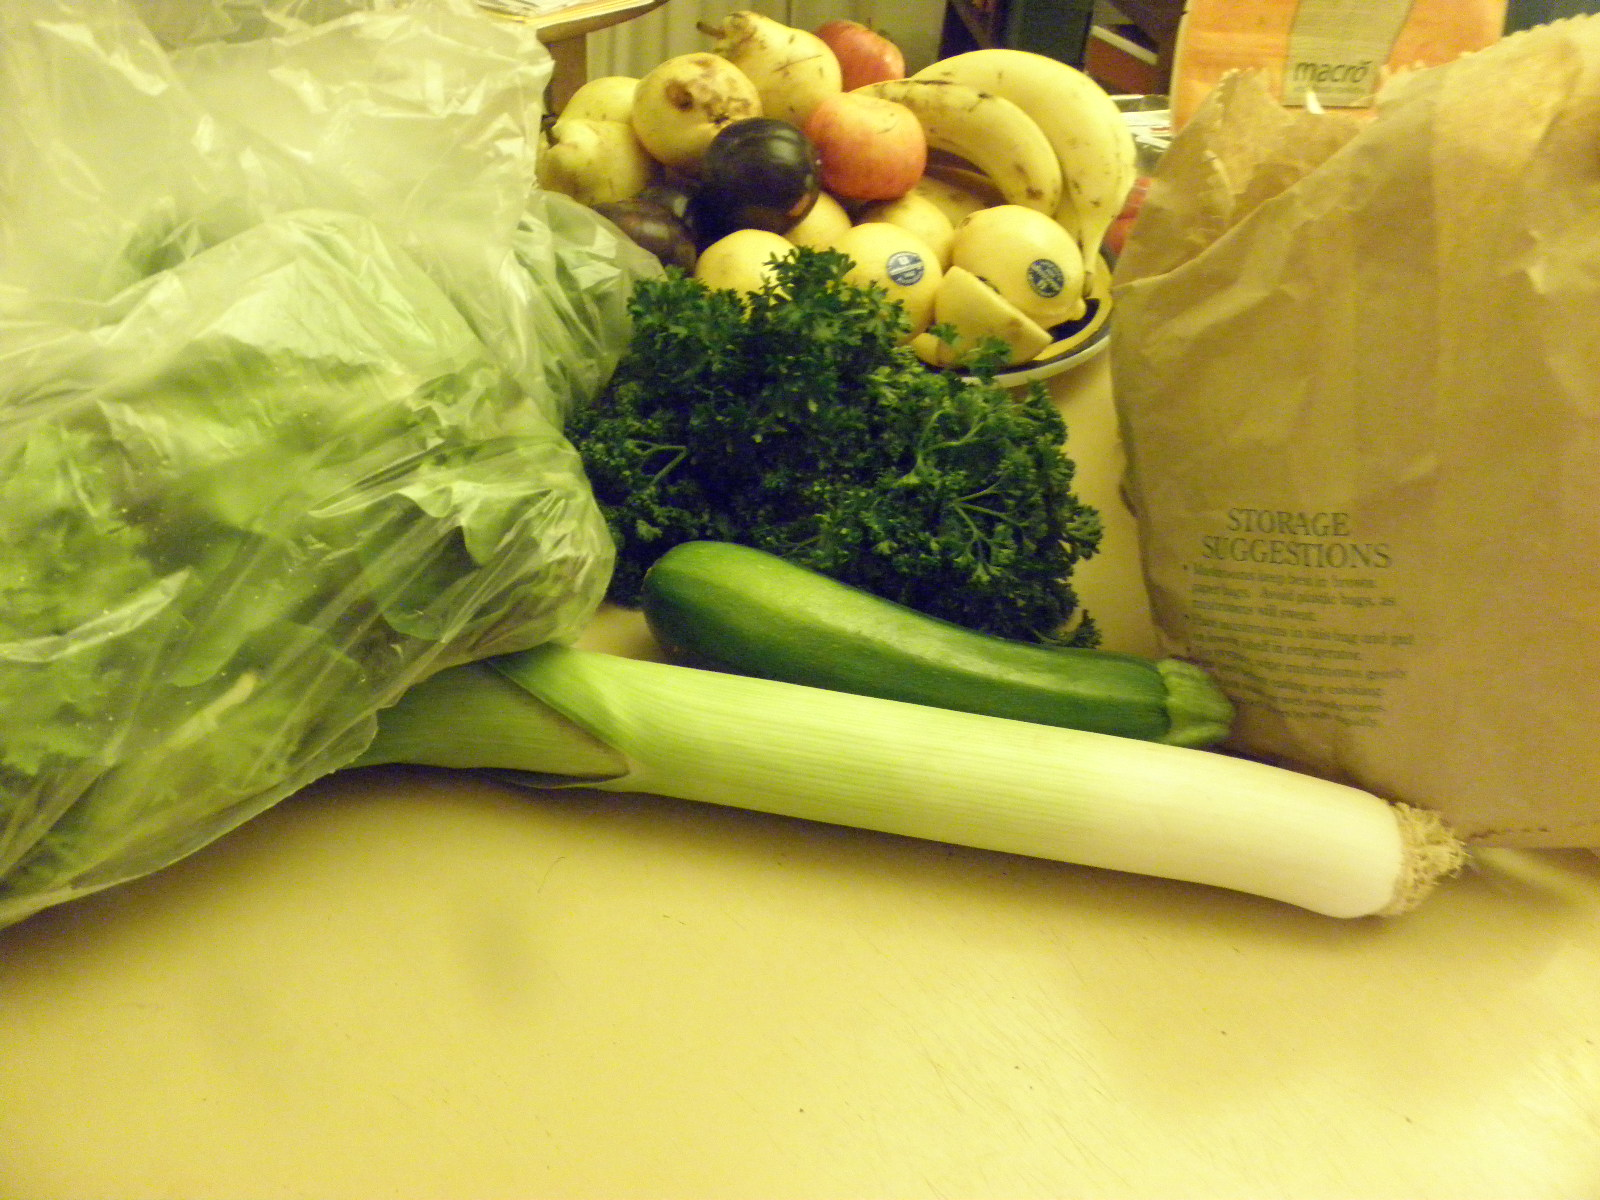 parsley, leek, fruit bag of mushrooms, lettuce